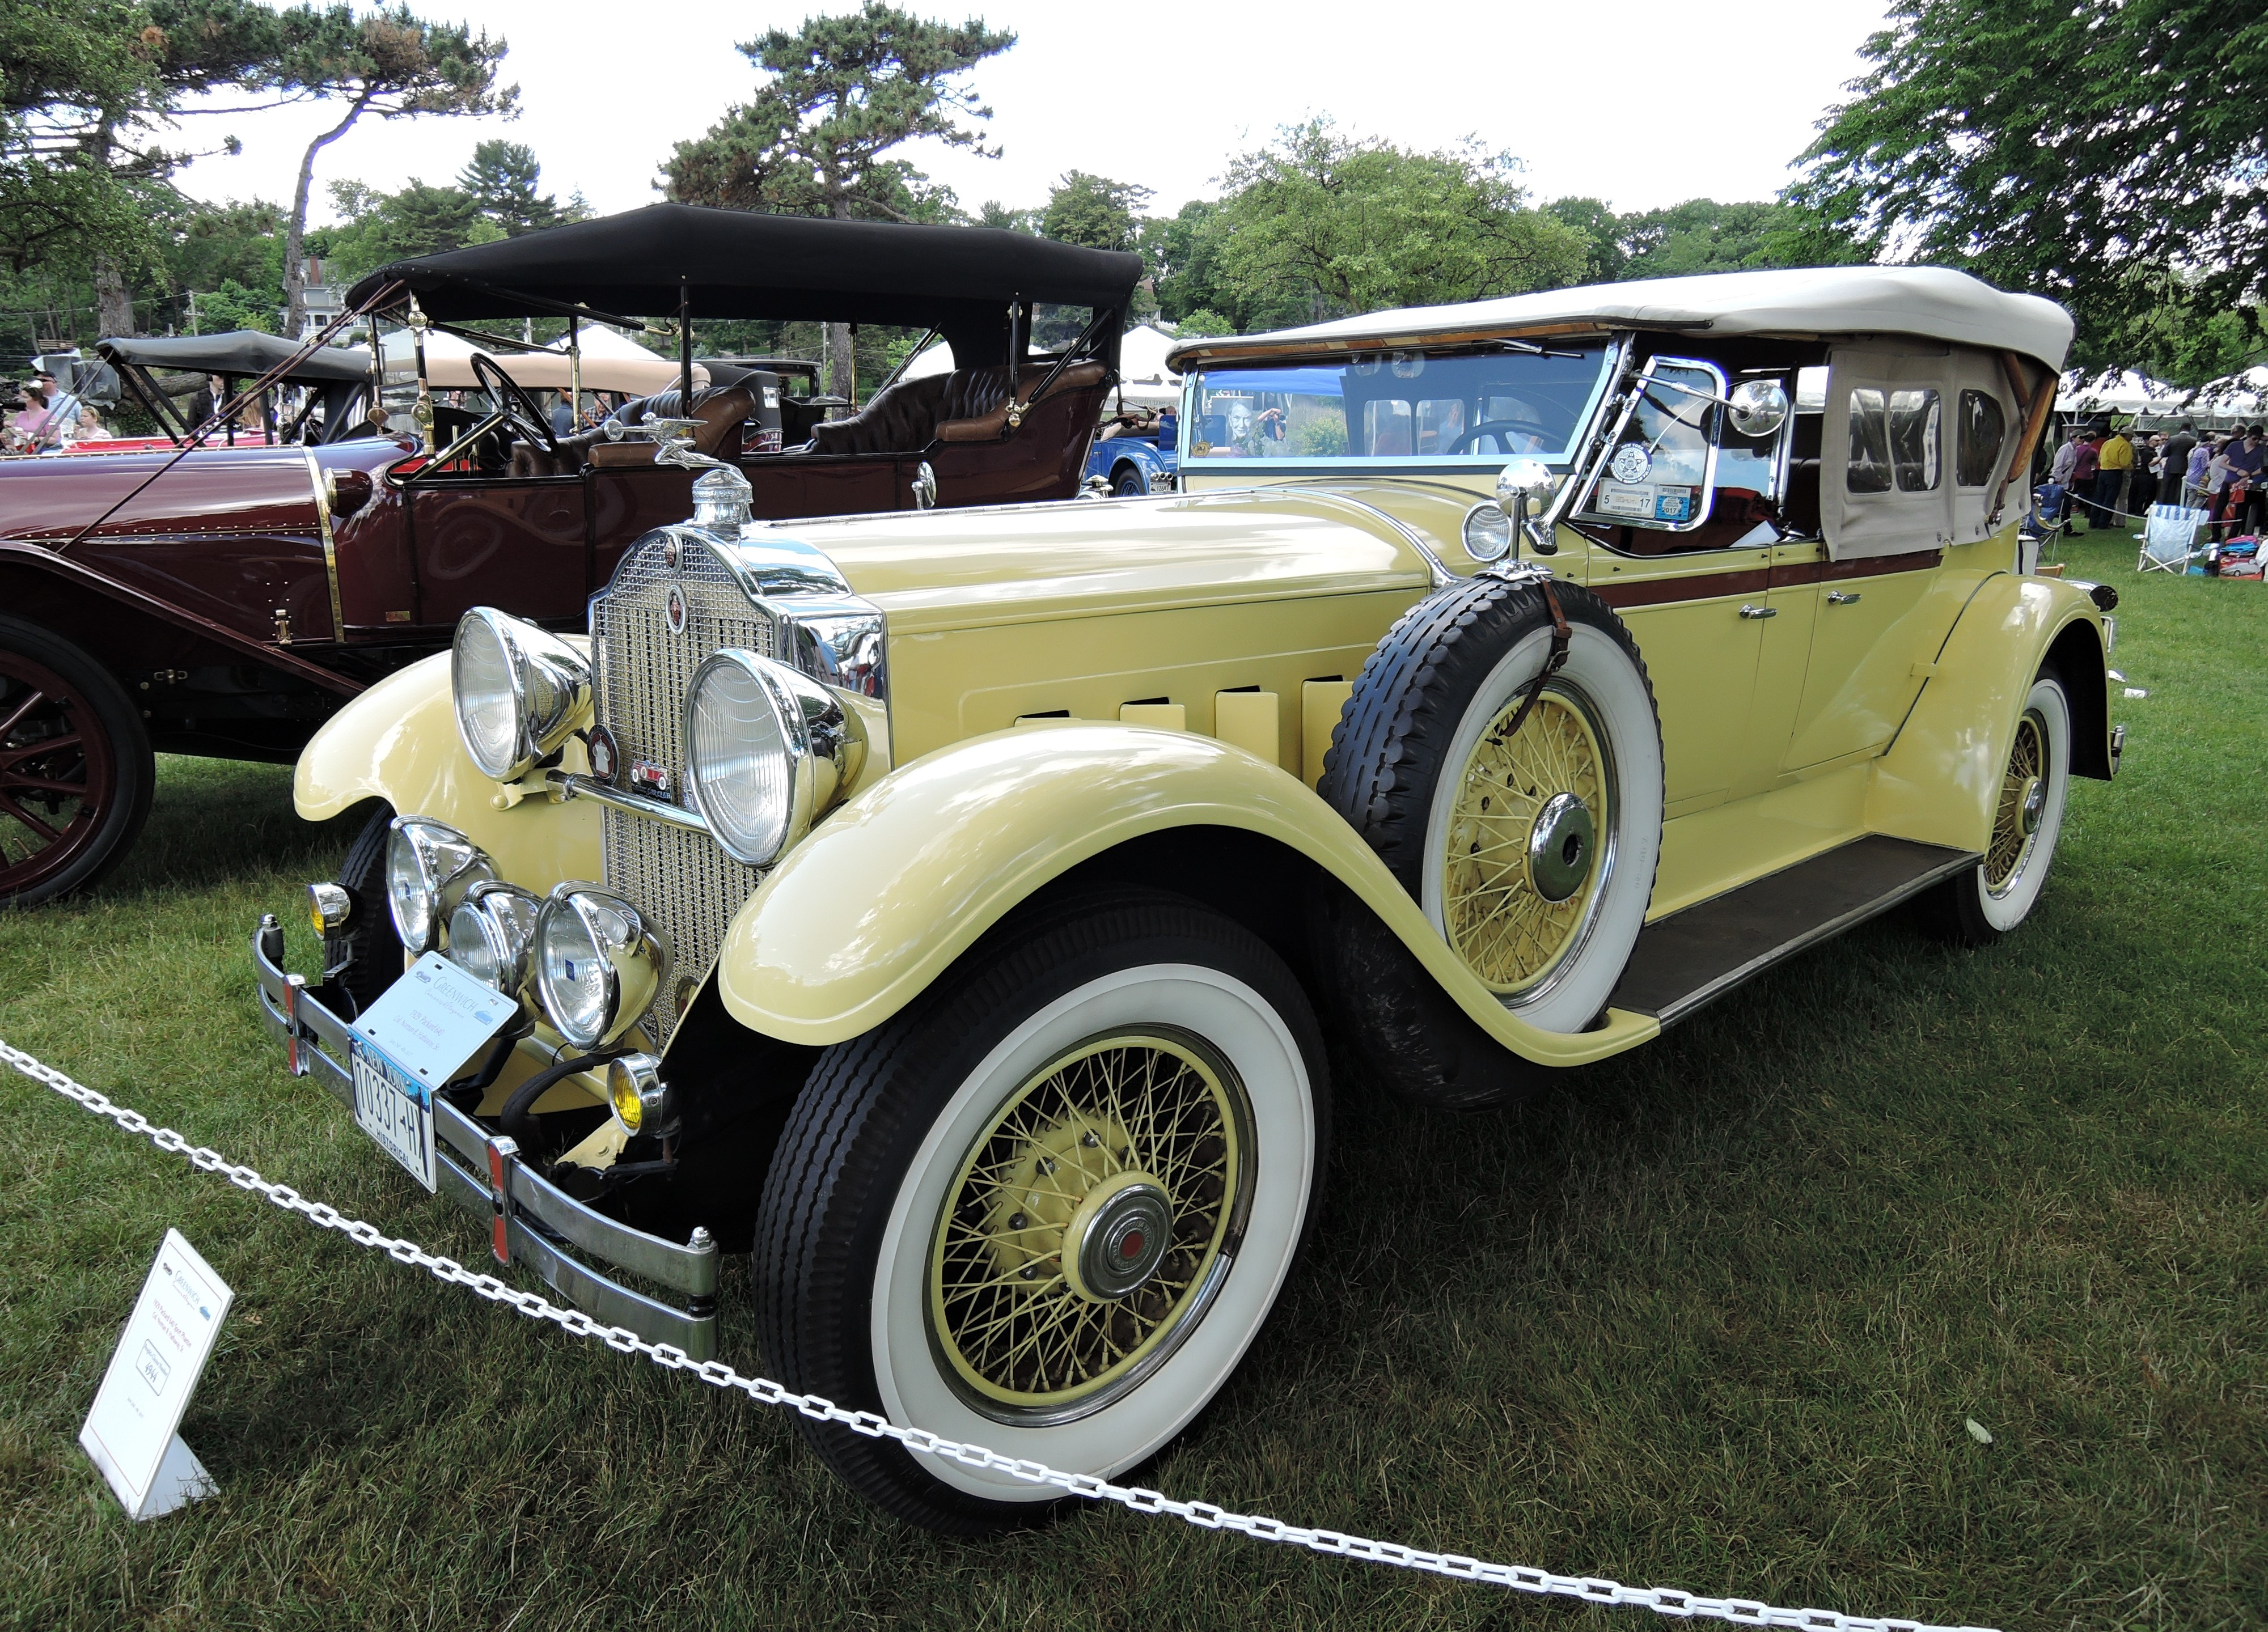 Greenwich Concours d'Elegance; Domestics - The Auto Blonde